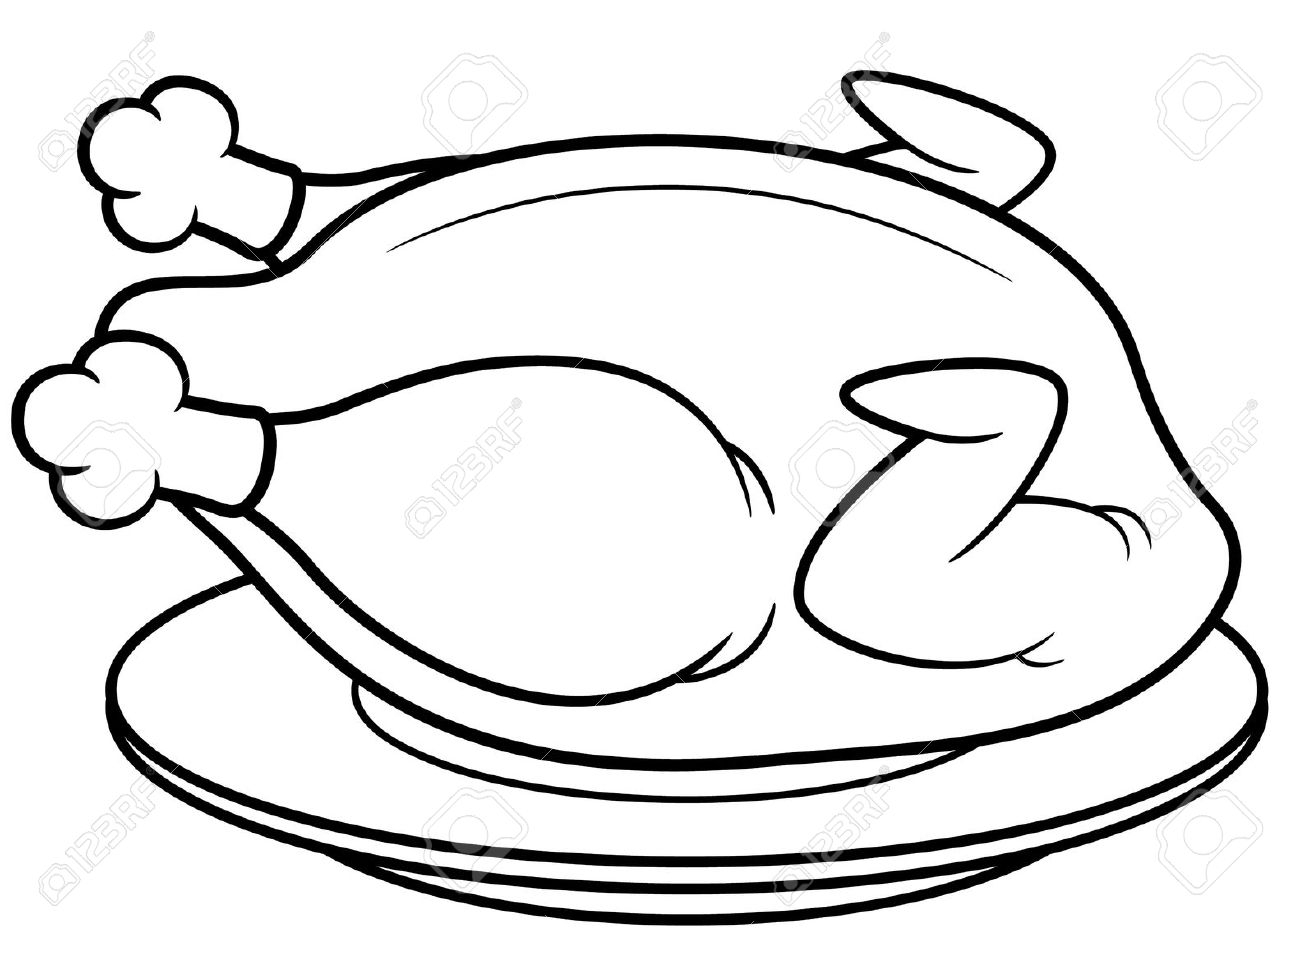 10060 Chicken free clipart.